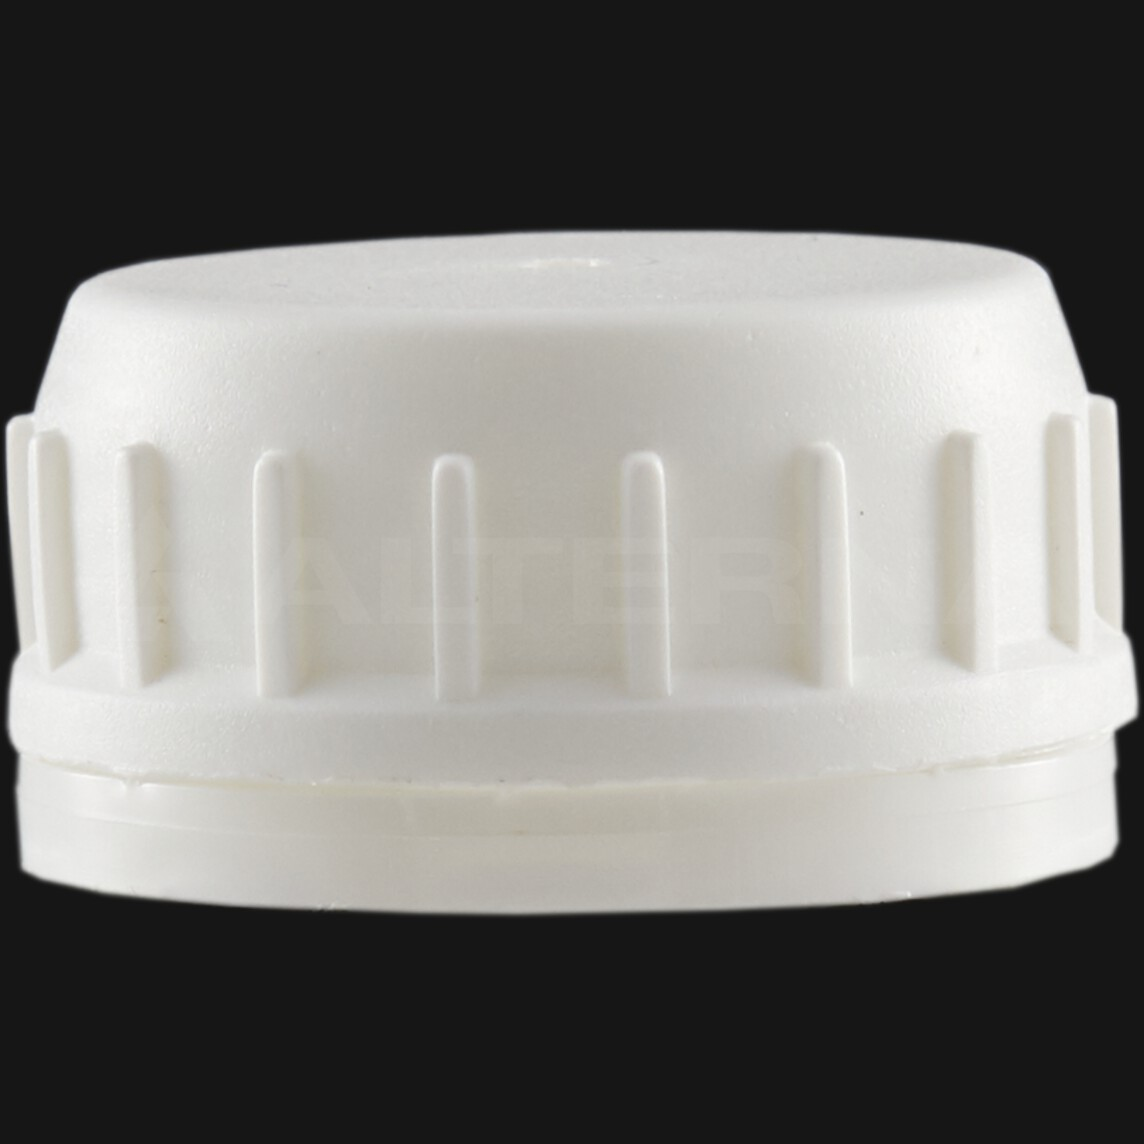 38 mm Foam Seal Secure Cap